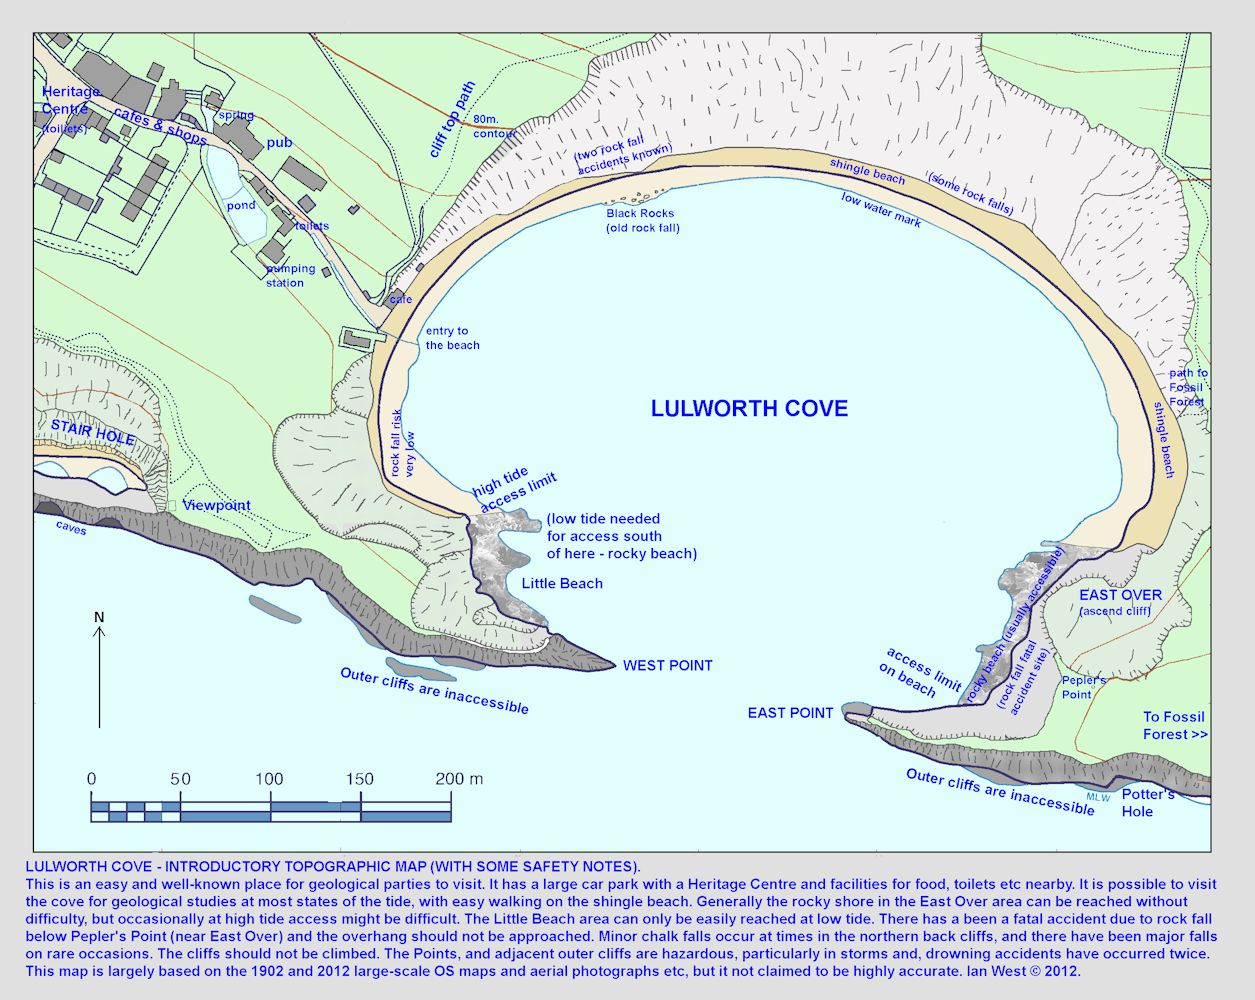 A large topographic map of Lulworth Cove, Dorset, with some safety notes